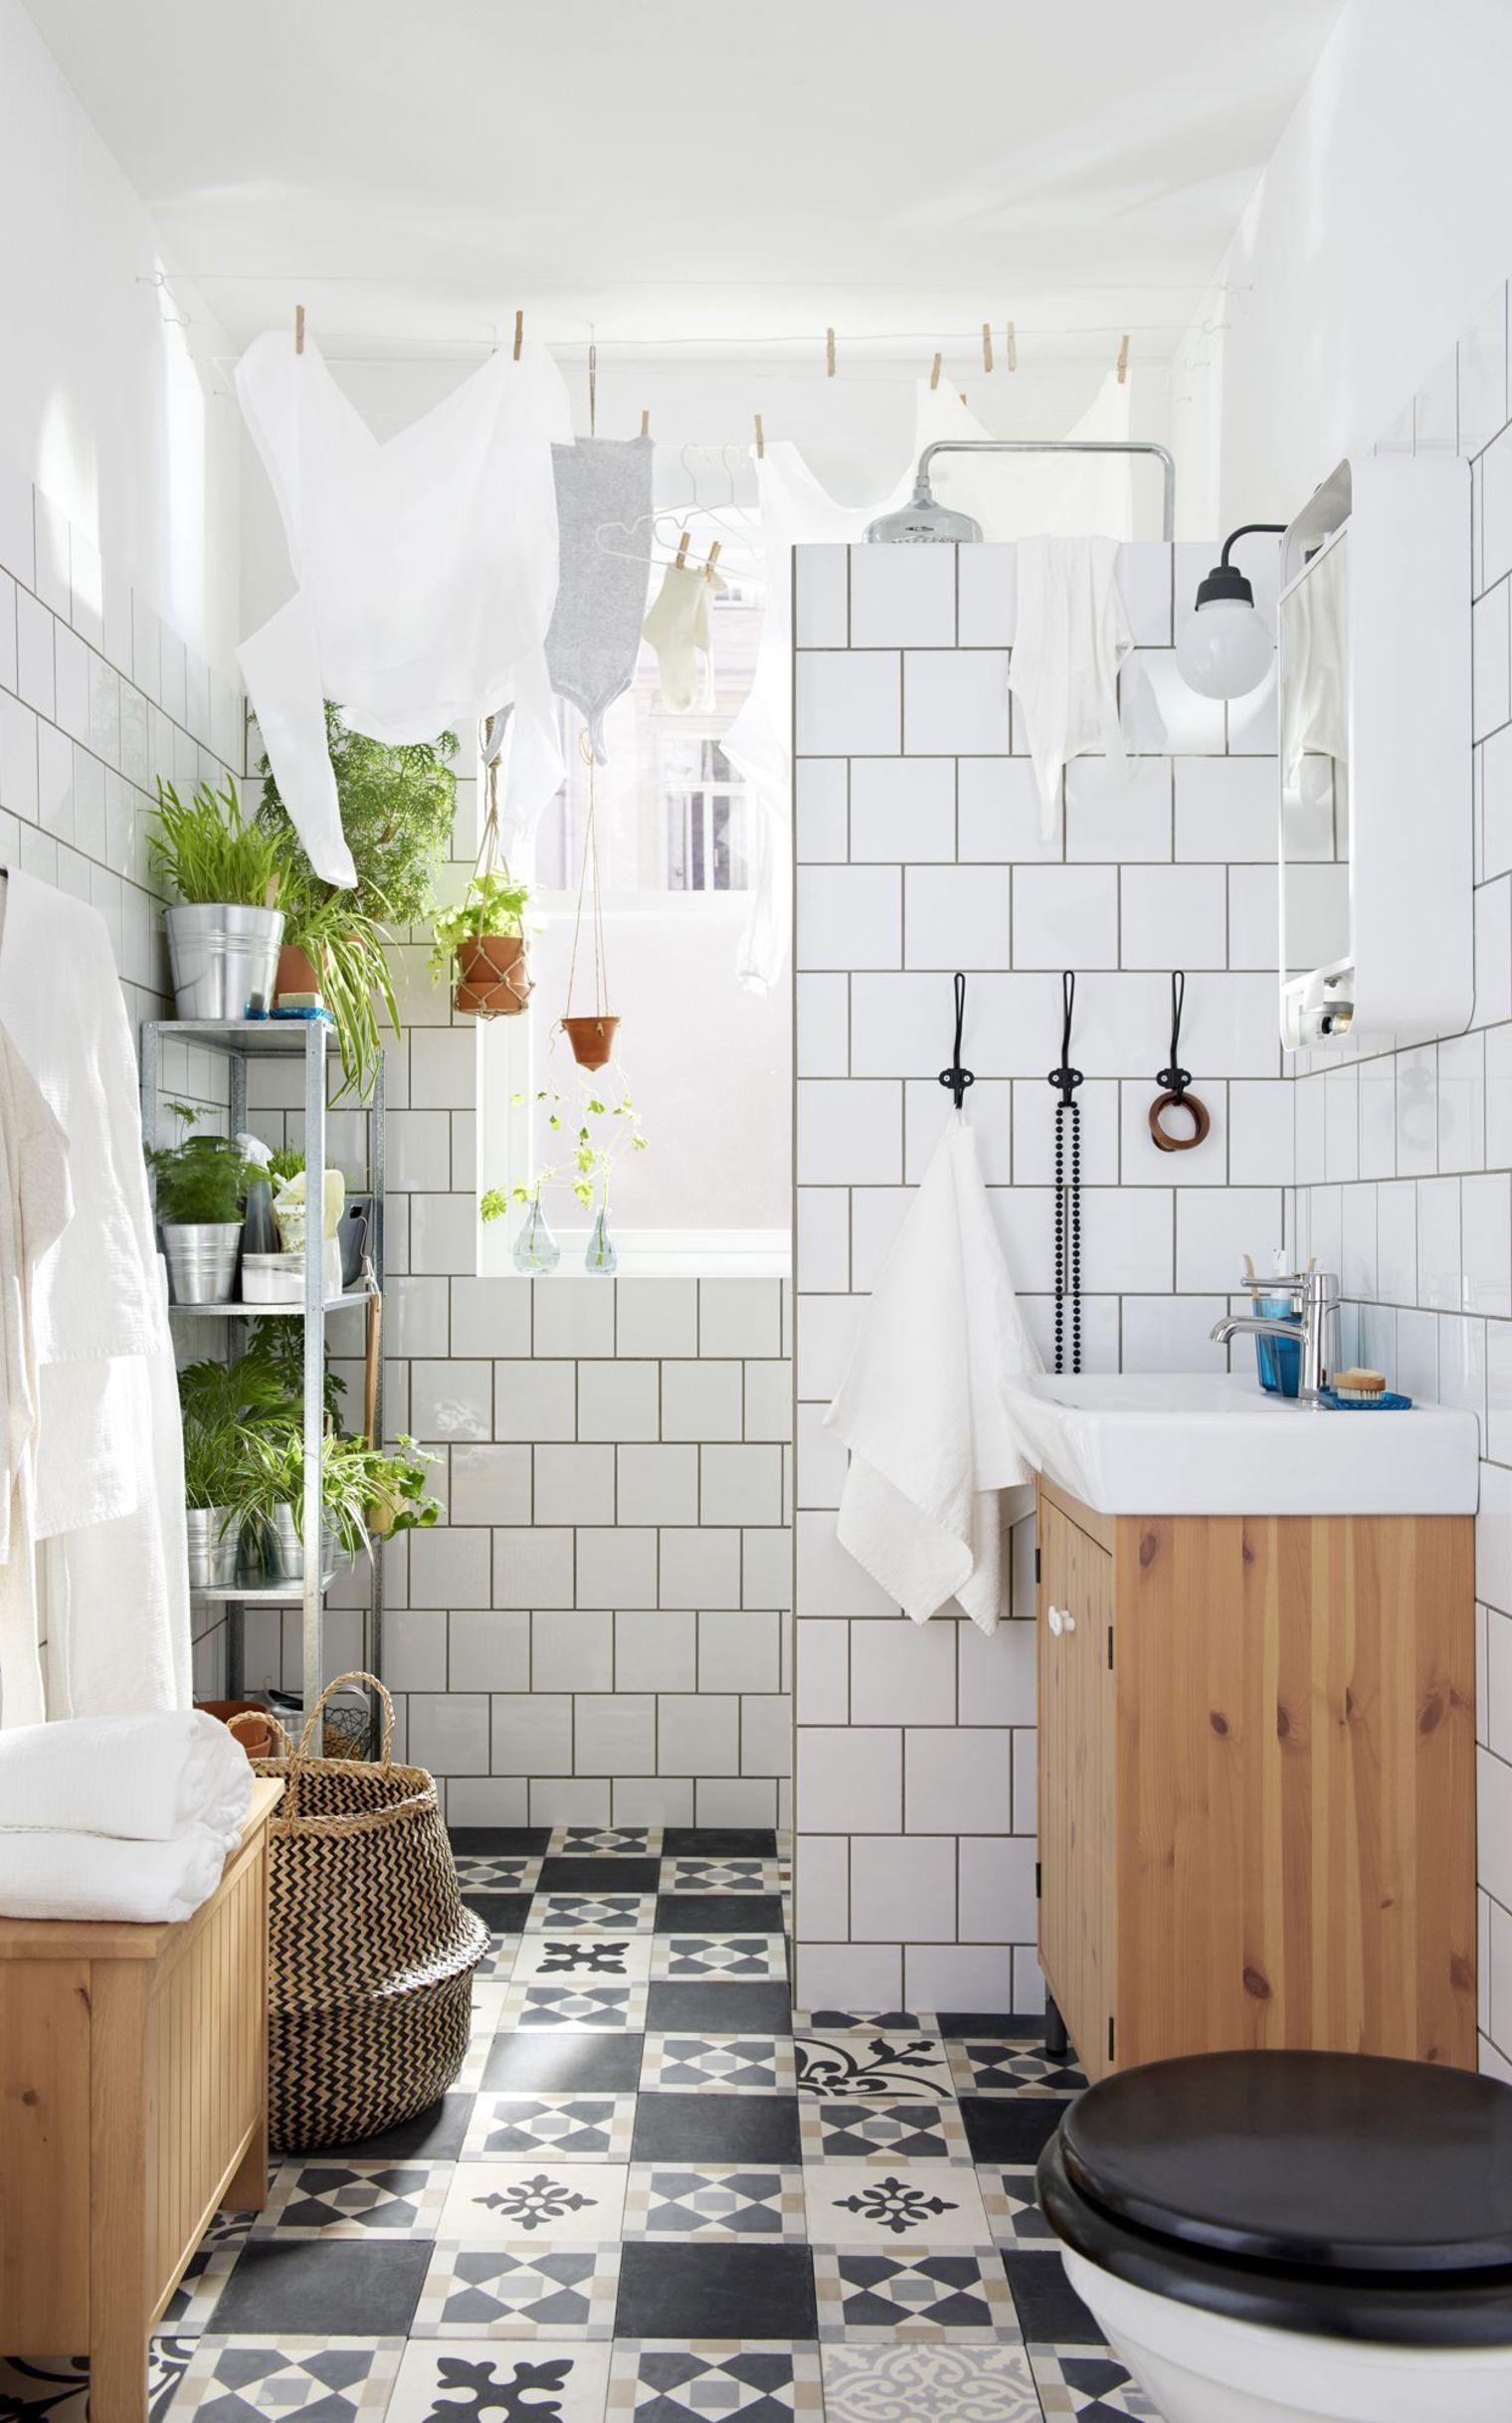 Naked with my plants | My house | Pinterest | Naked, Bathroom ...